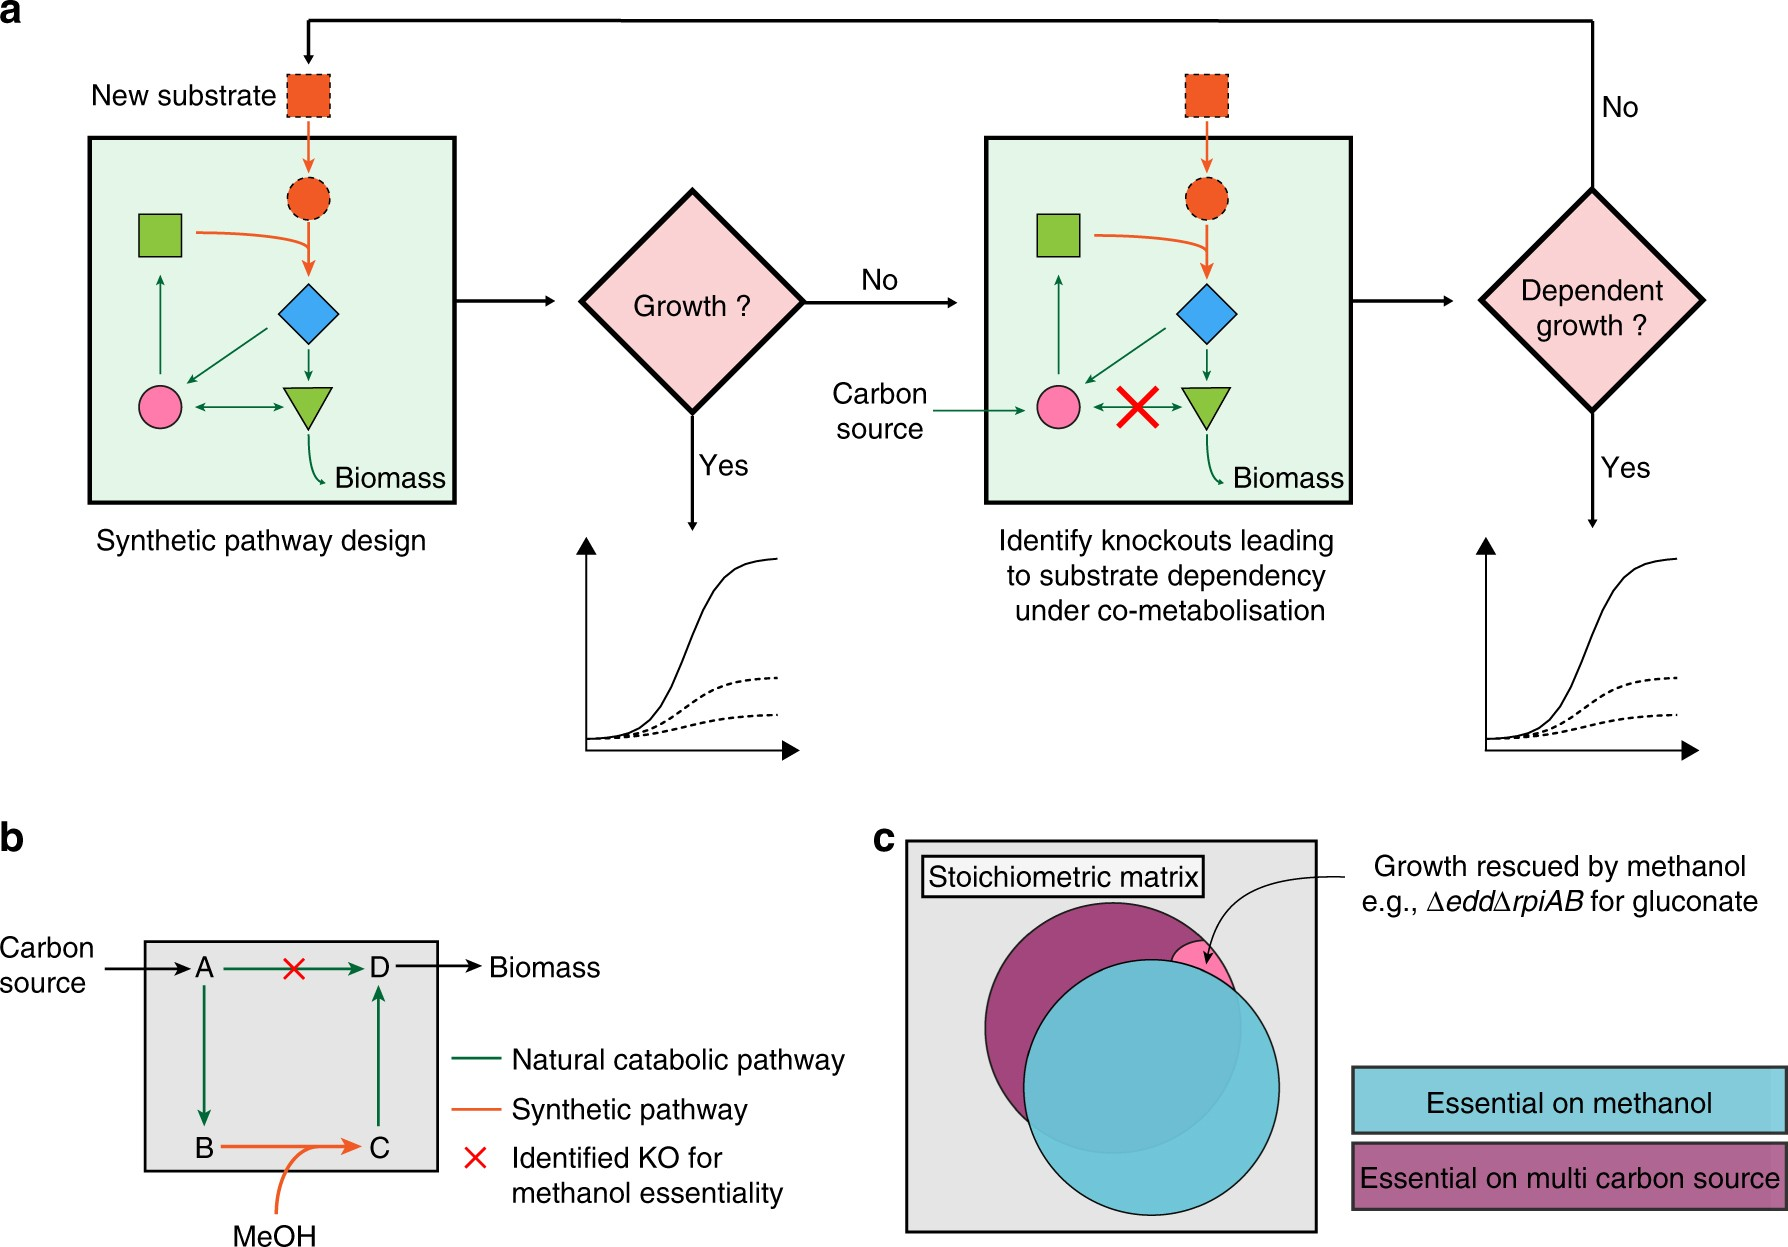 Methanol-essential growth of Escherichia coli | Nature Communications